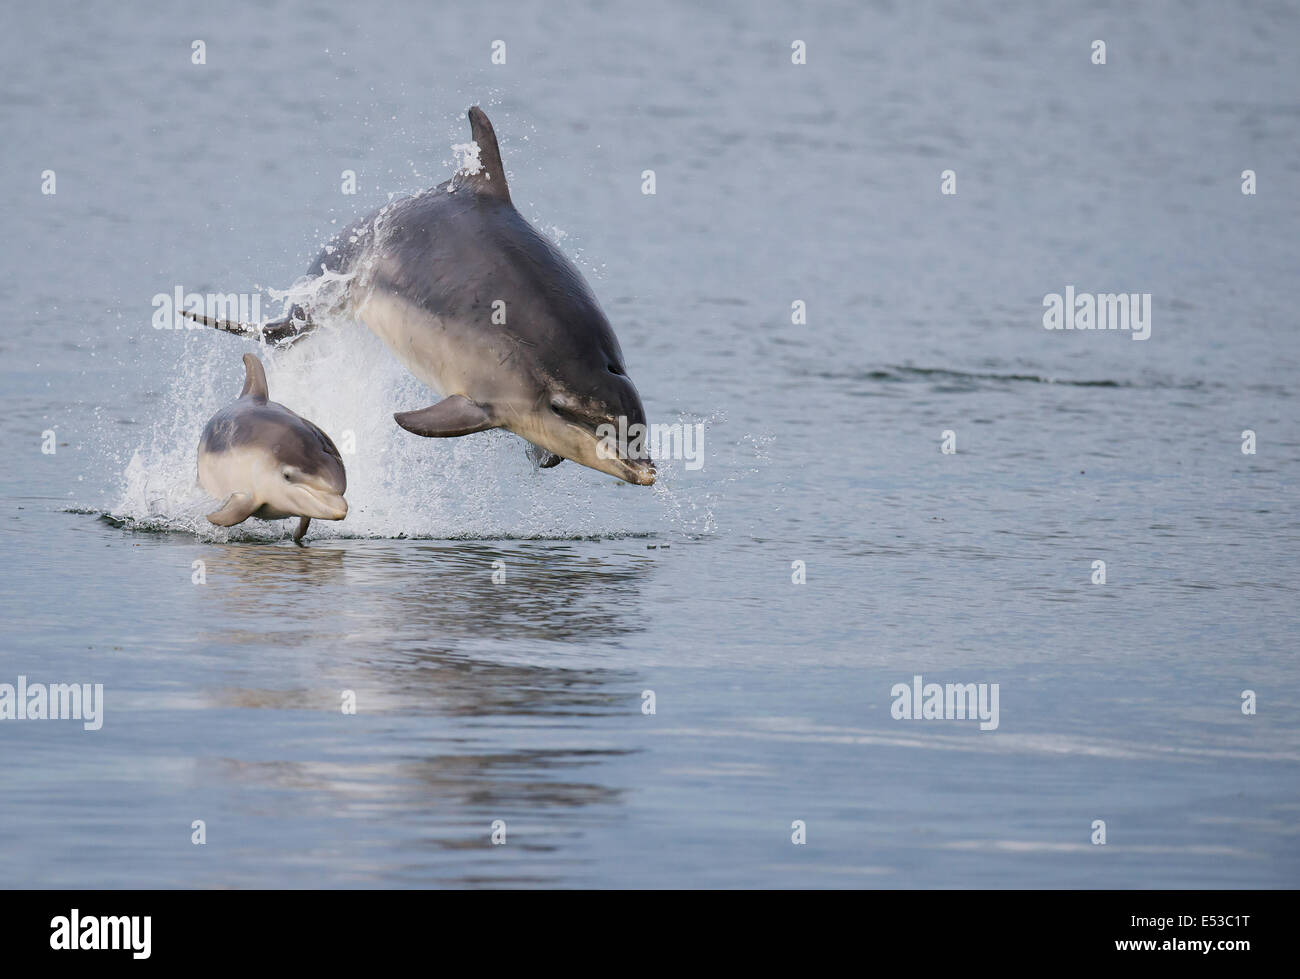 Female Bottlenose Dolphin with her calf at Chanonry Point, Scotland - Stock Image